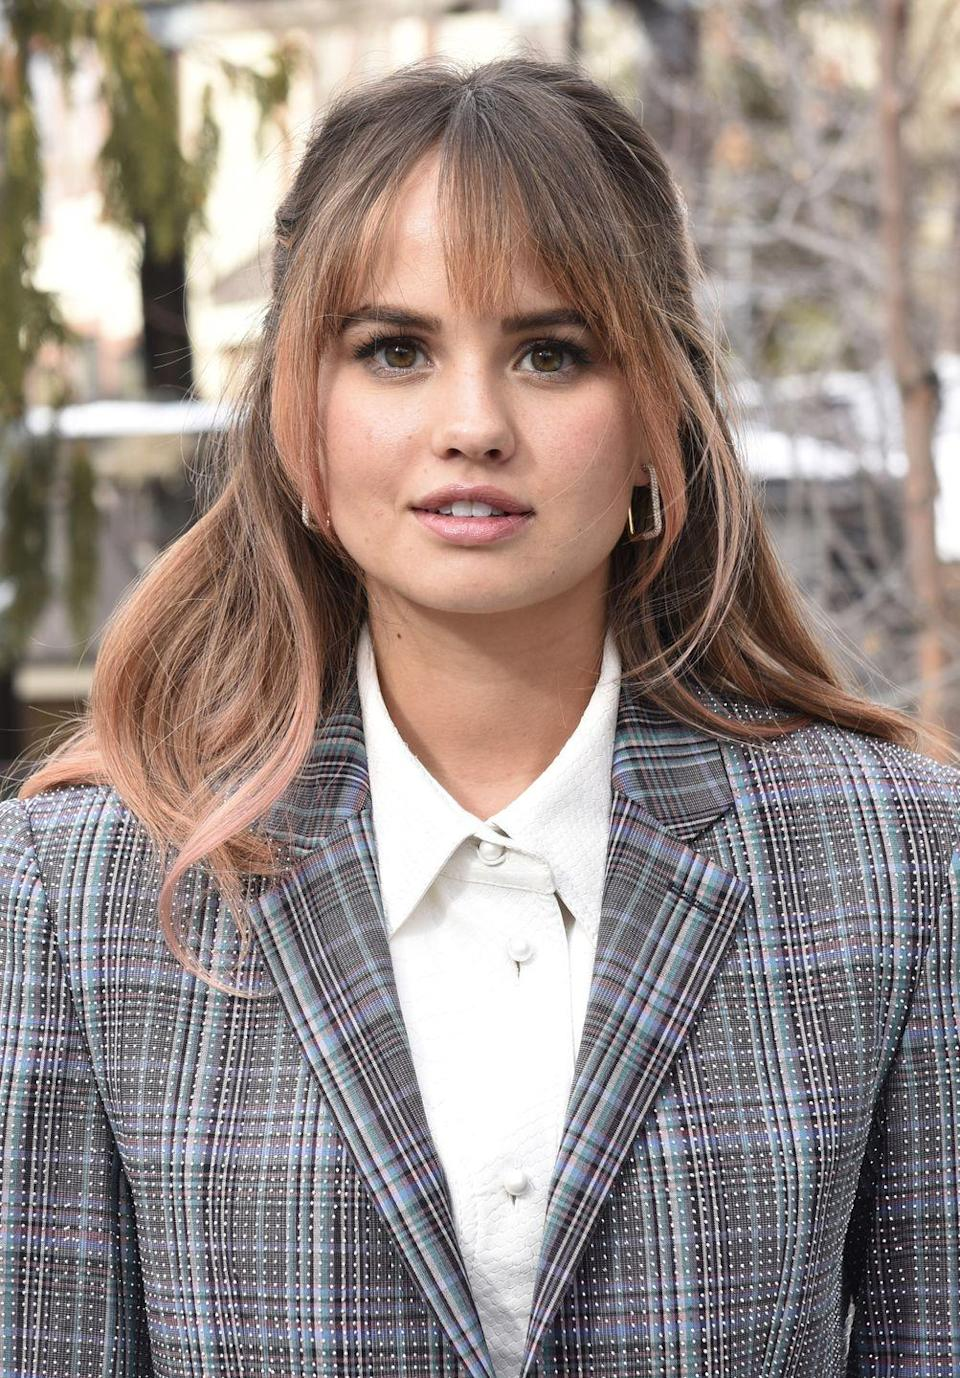 <p>The rose gold trend may never die down at this point. To bring it into a seasonally appropriate fall hair color, ask your colorist to weave in pink tones along the bottom with deeper brown hues at the base, like actress <strong>Debby Ryan</strong>.</p>